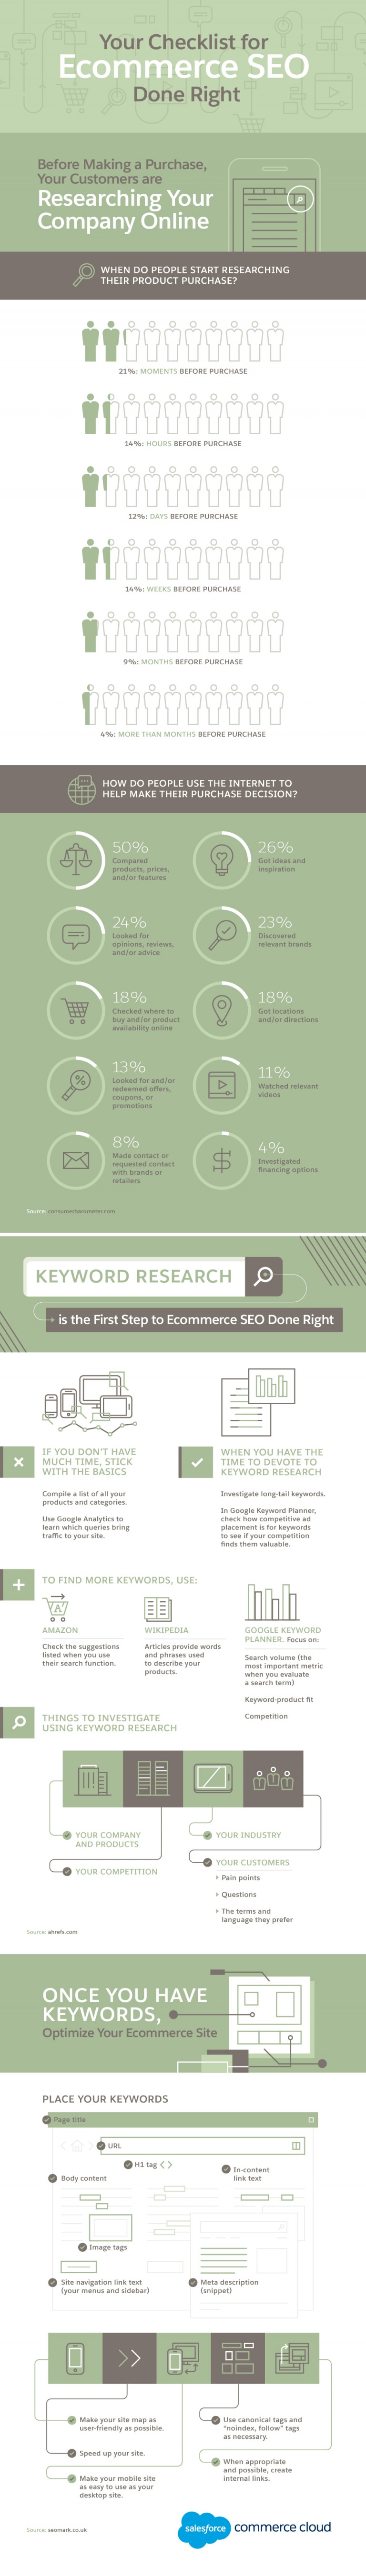 Your Checklist for Ecommerce SEO Done Right